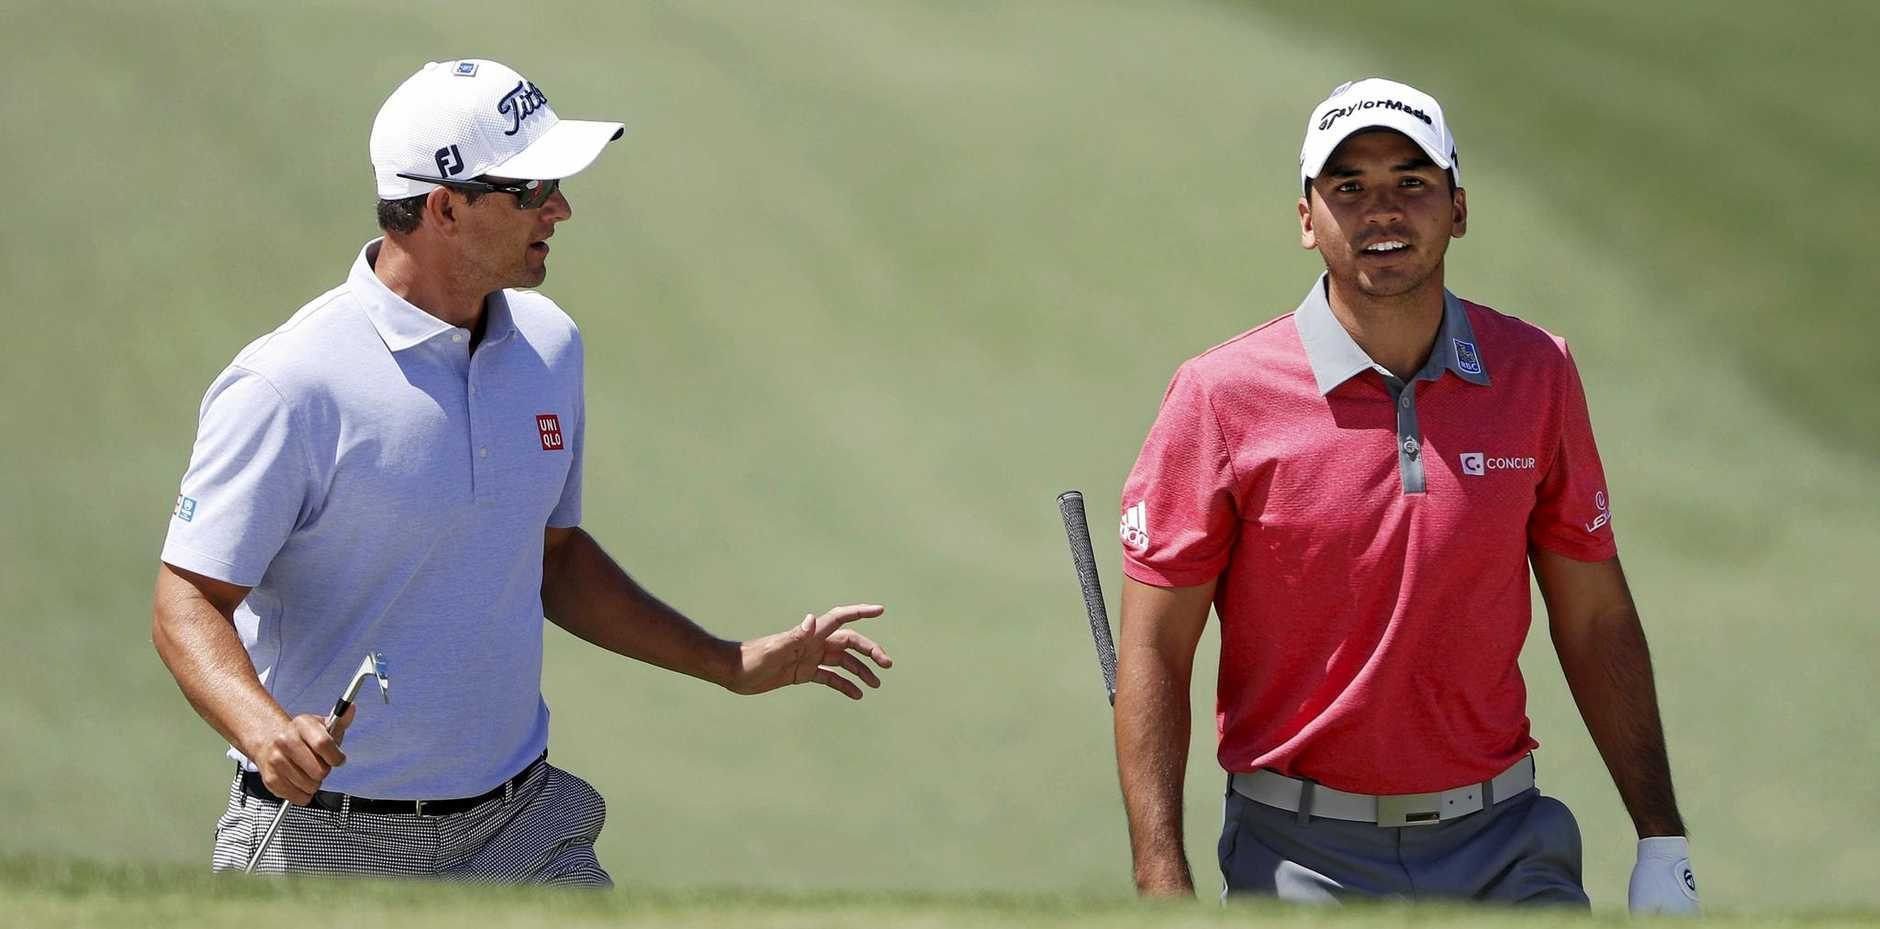 Jason Day and Adam Scott will be part of all-star groupings in the first two rounds at the PGA Champonship.  EPA/ANDREW GOMBERT